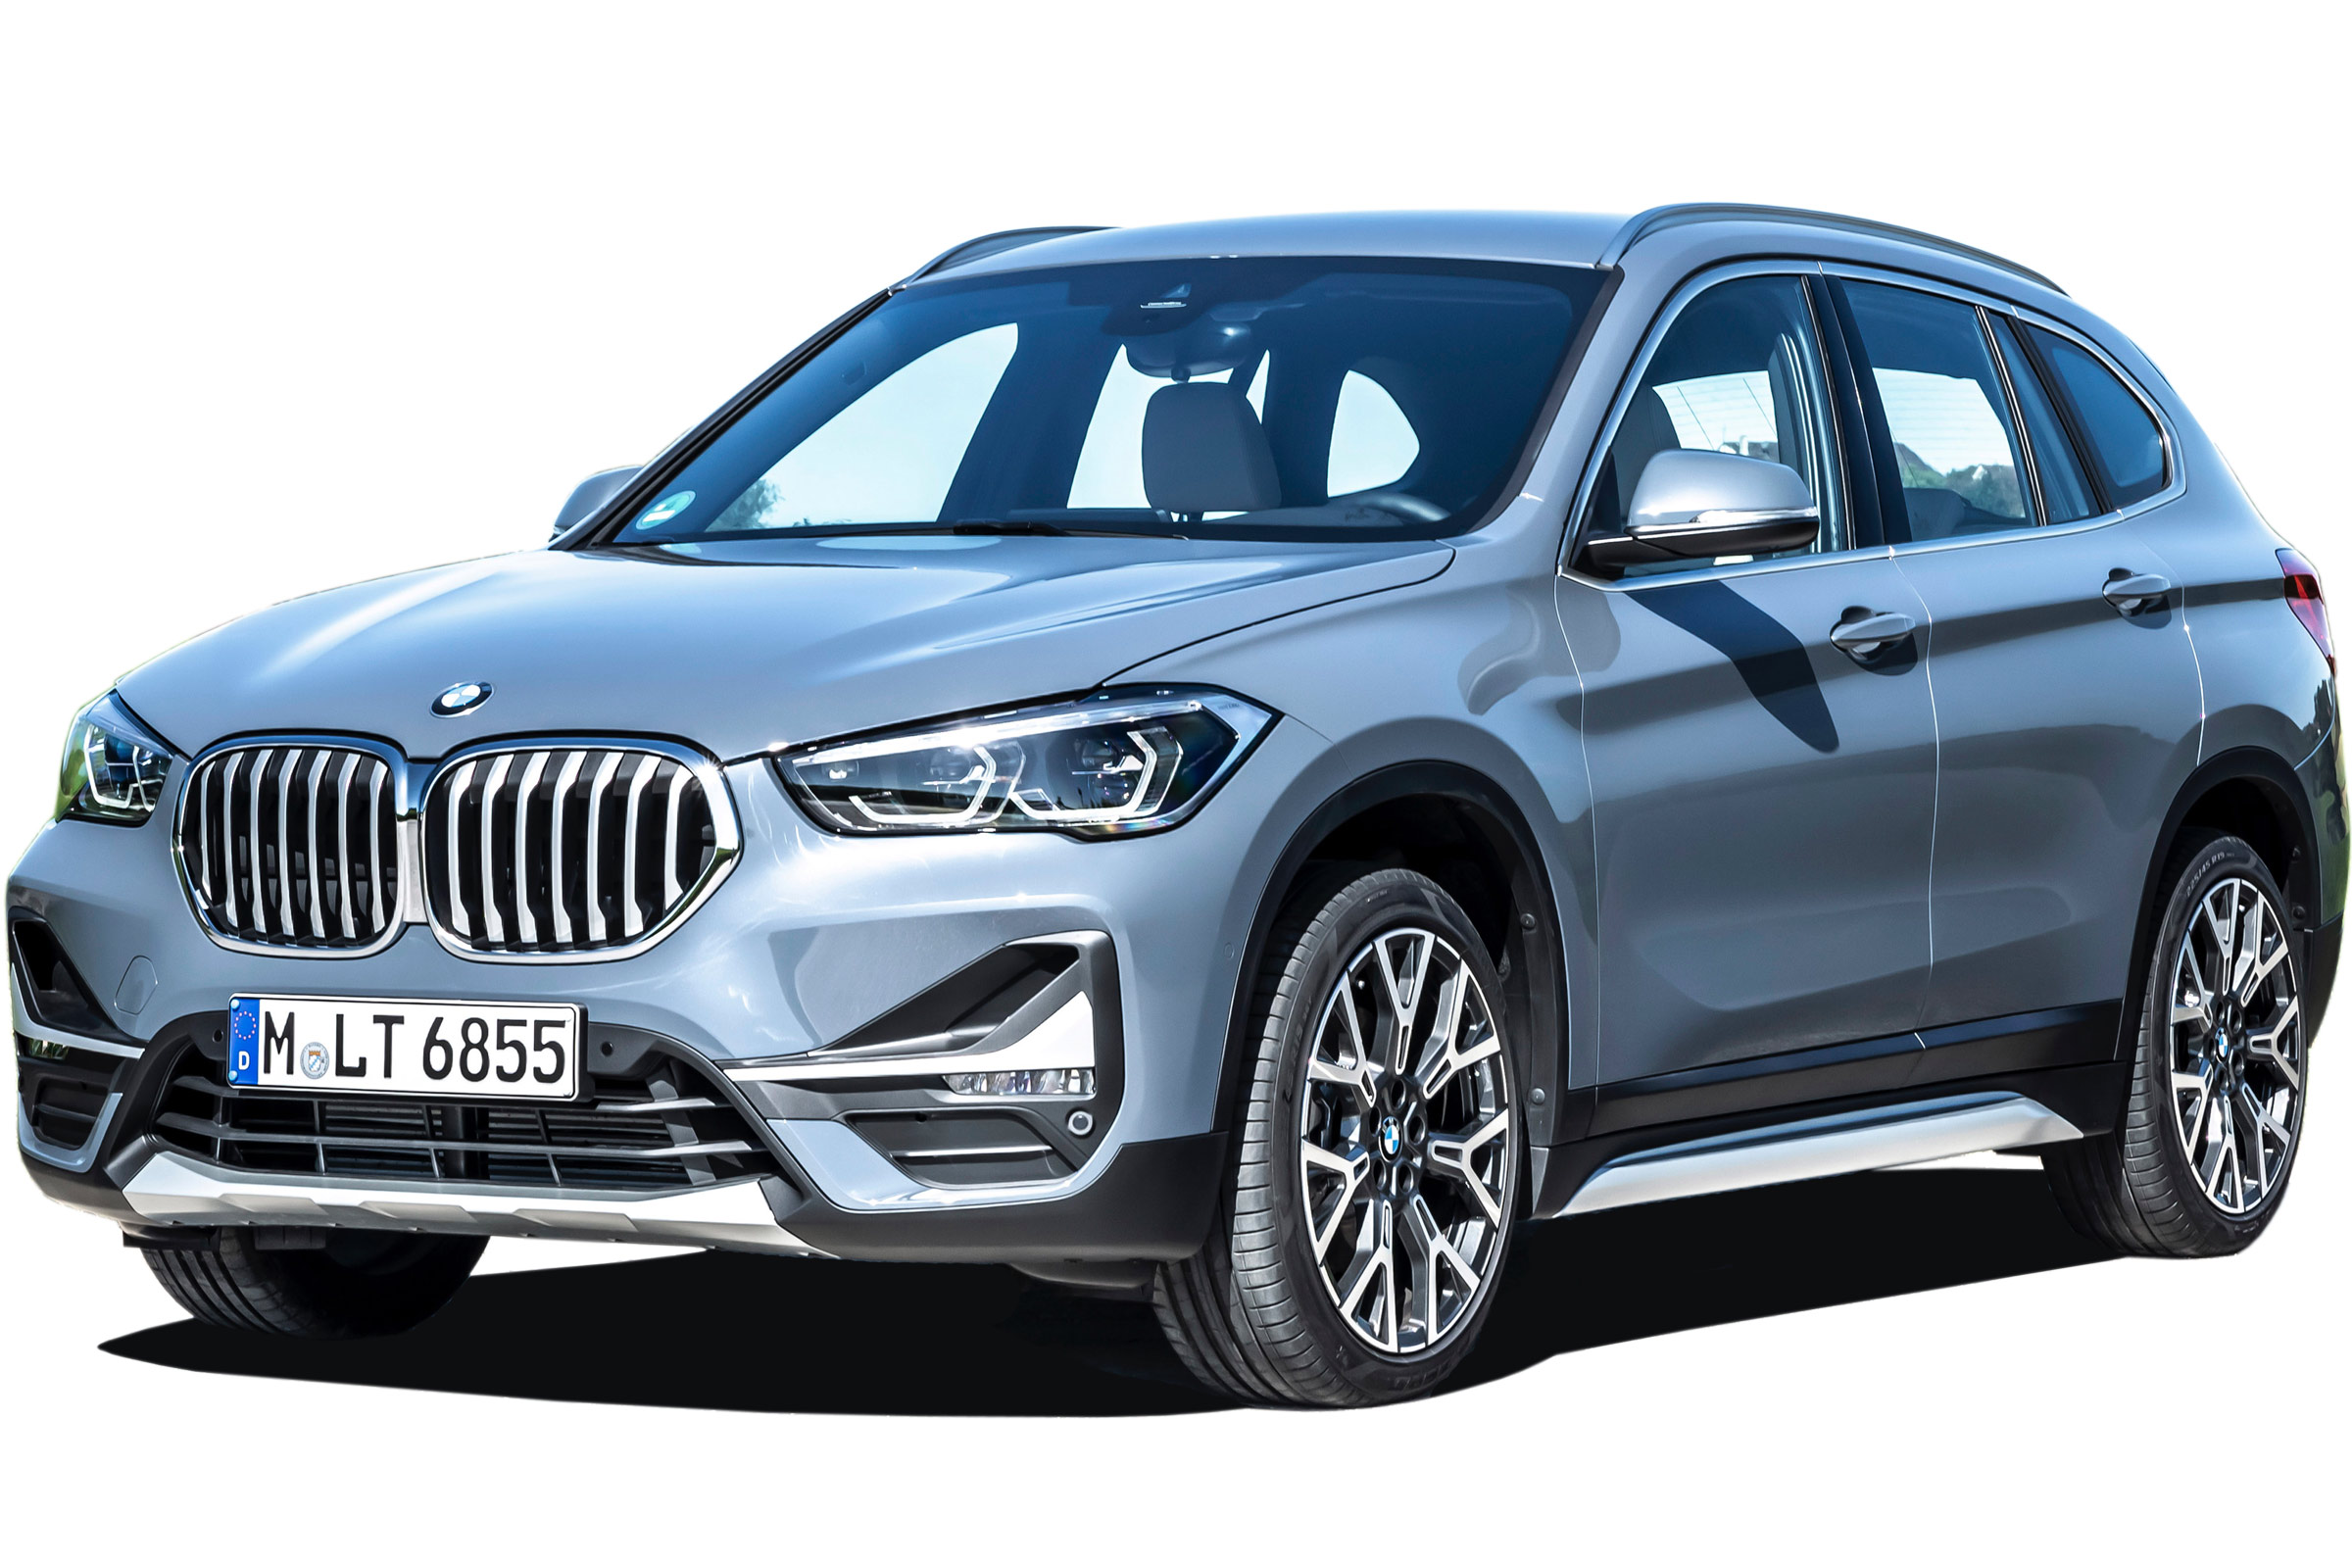 Bmw X1 Suv Interior Comfort 2020 Review Carbuyer